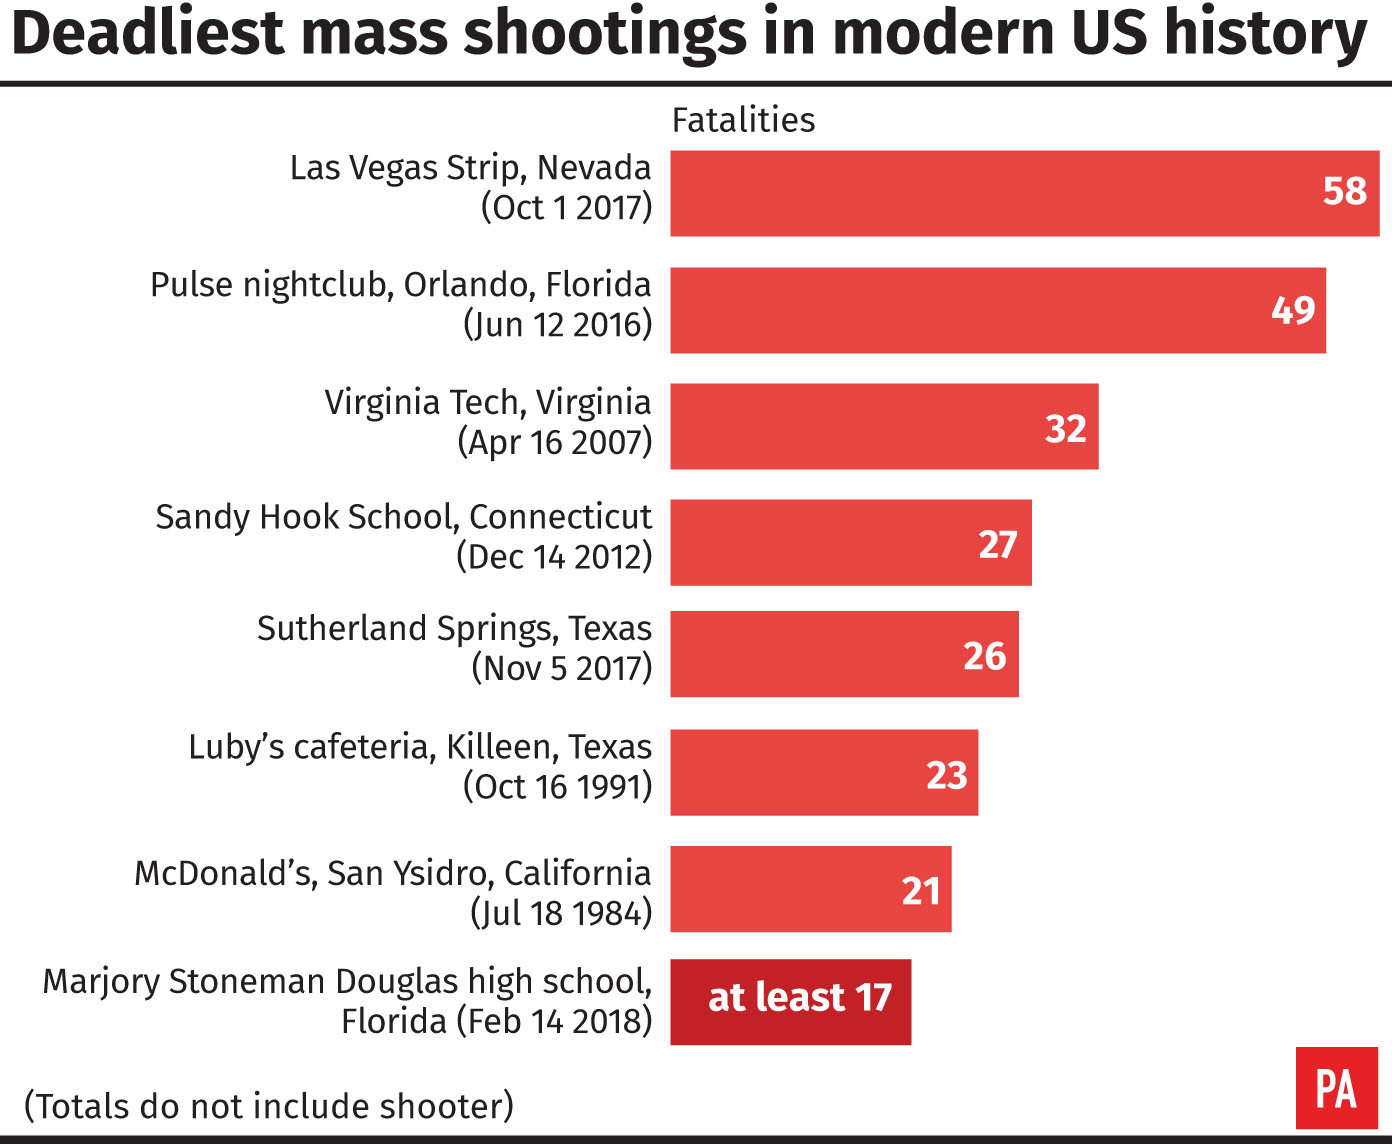 Deadliest mass shootings in modern US history (PA Graphics)